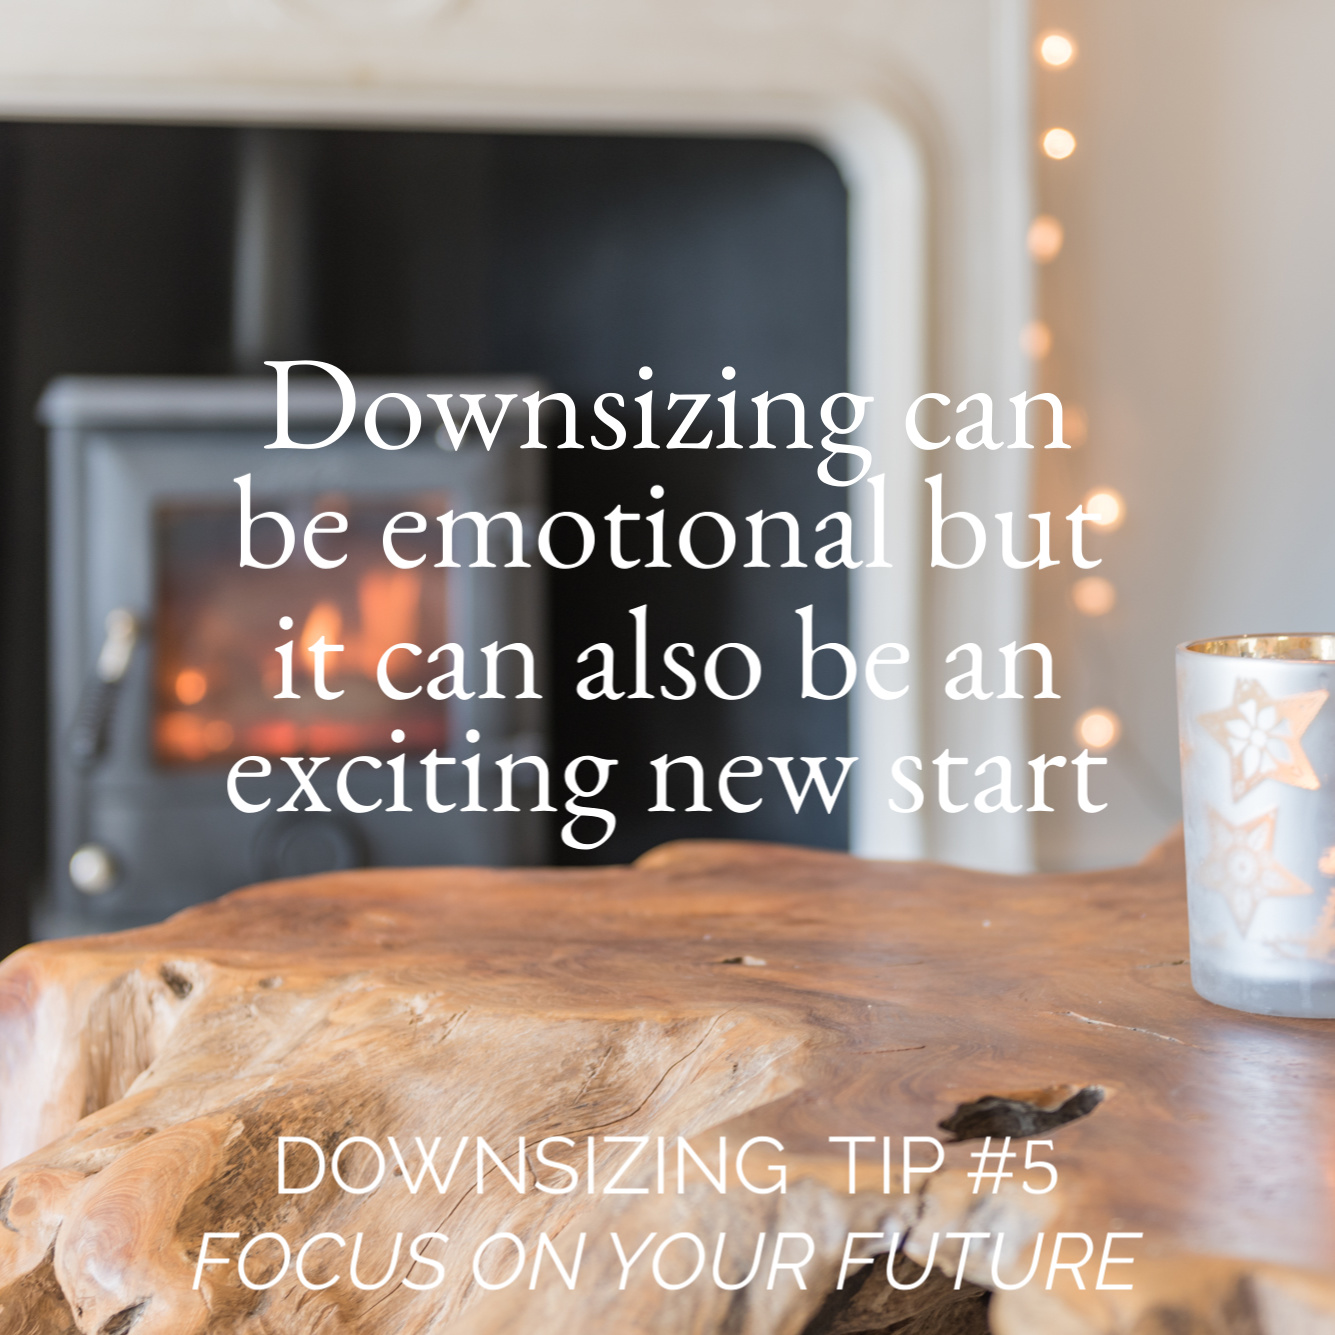 tg5-downsizing-can-be-emotional